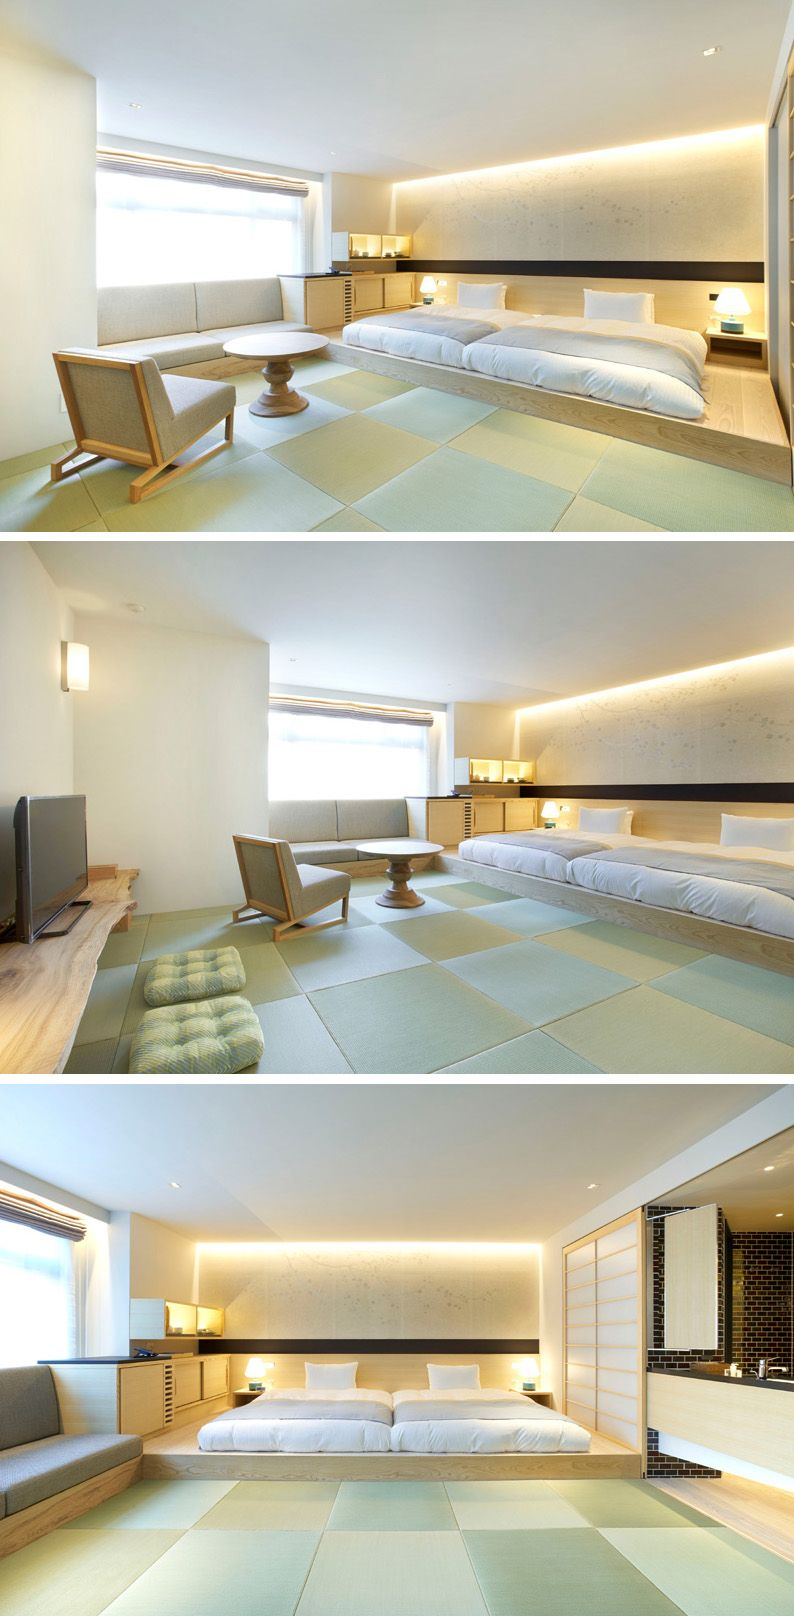 Hotel Room Designs: 7 Ways This Hotel Room Exemplifies Japanese Culture